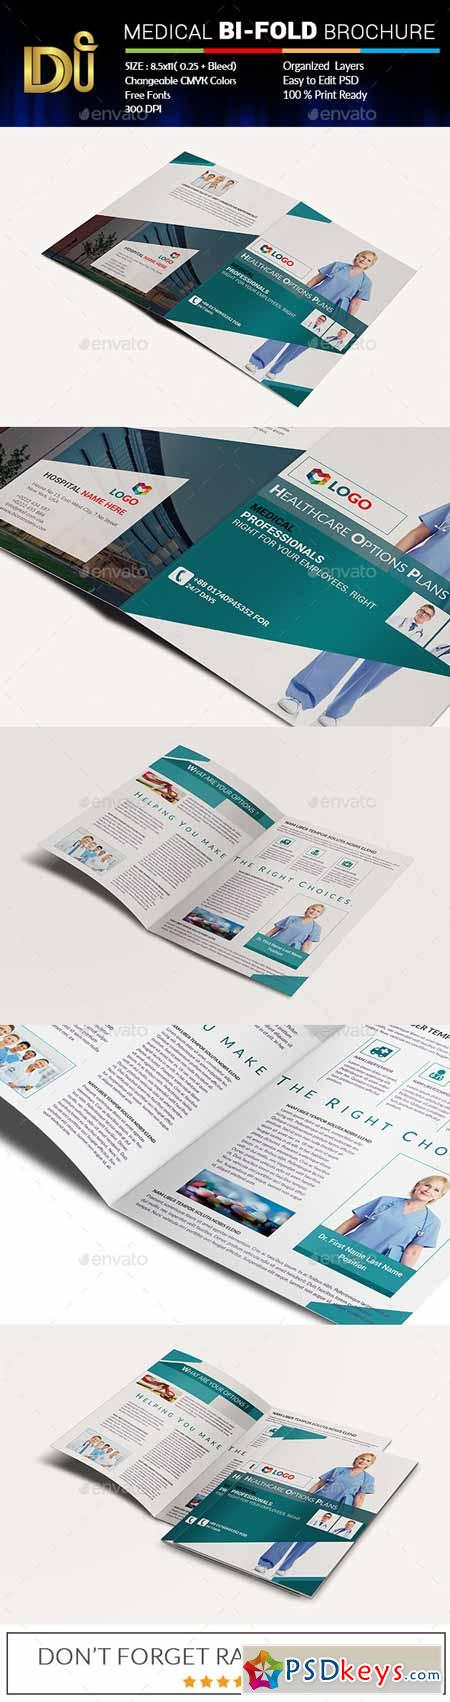 2 fold brochure template photoshop - medical bi fold brochure 11770691 free download